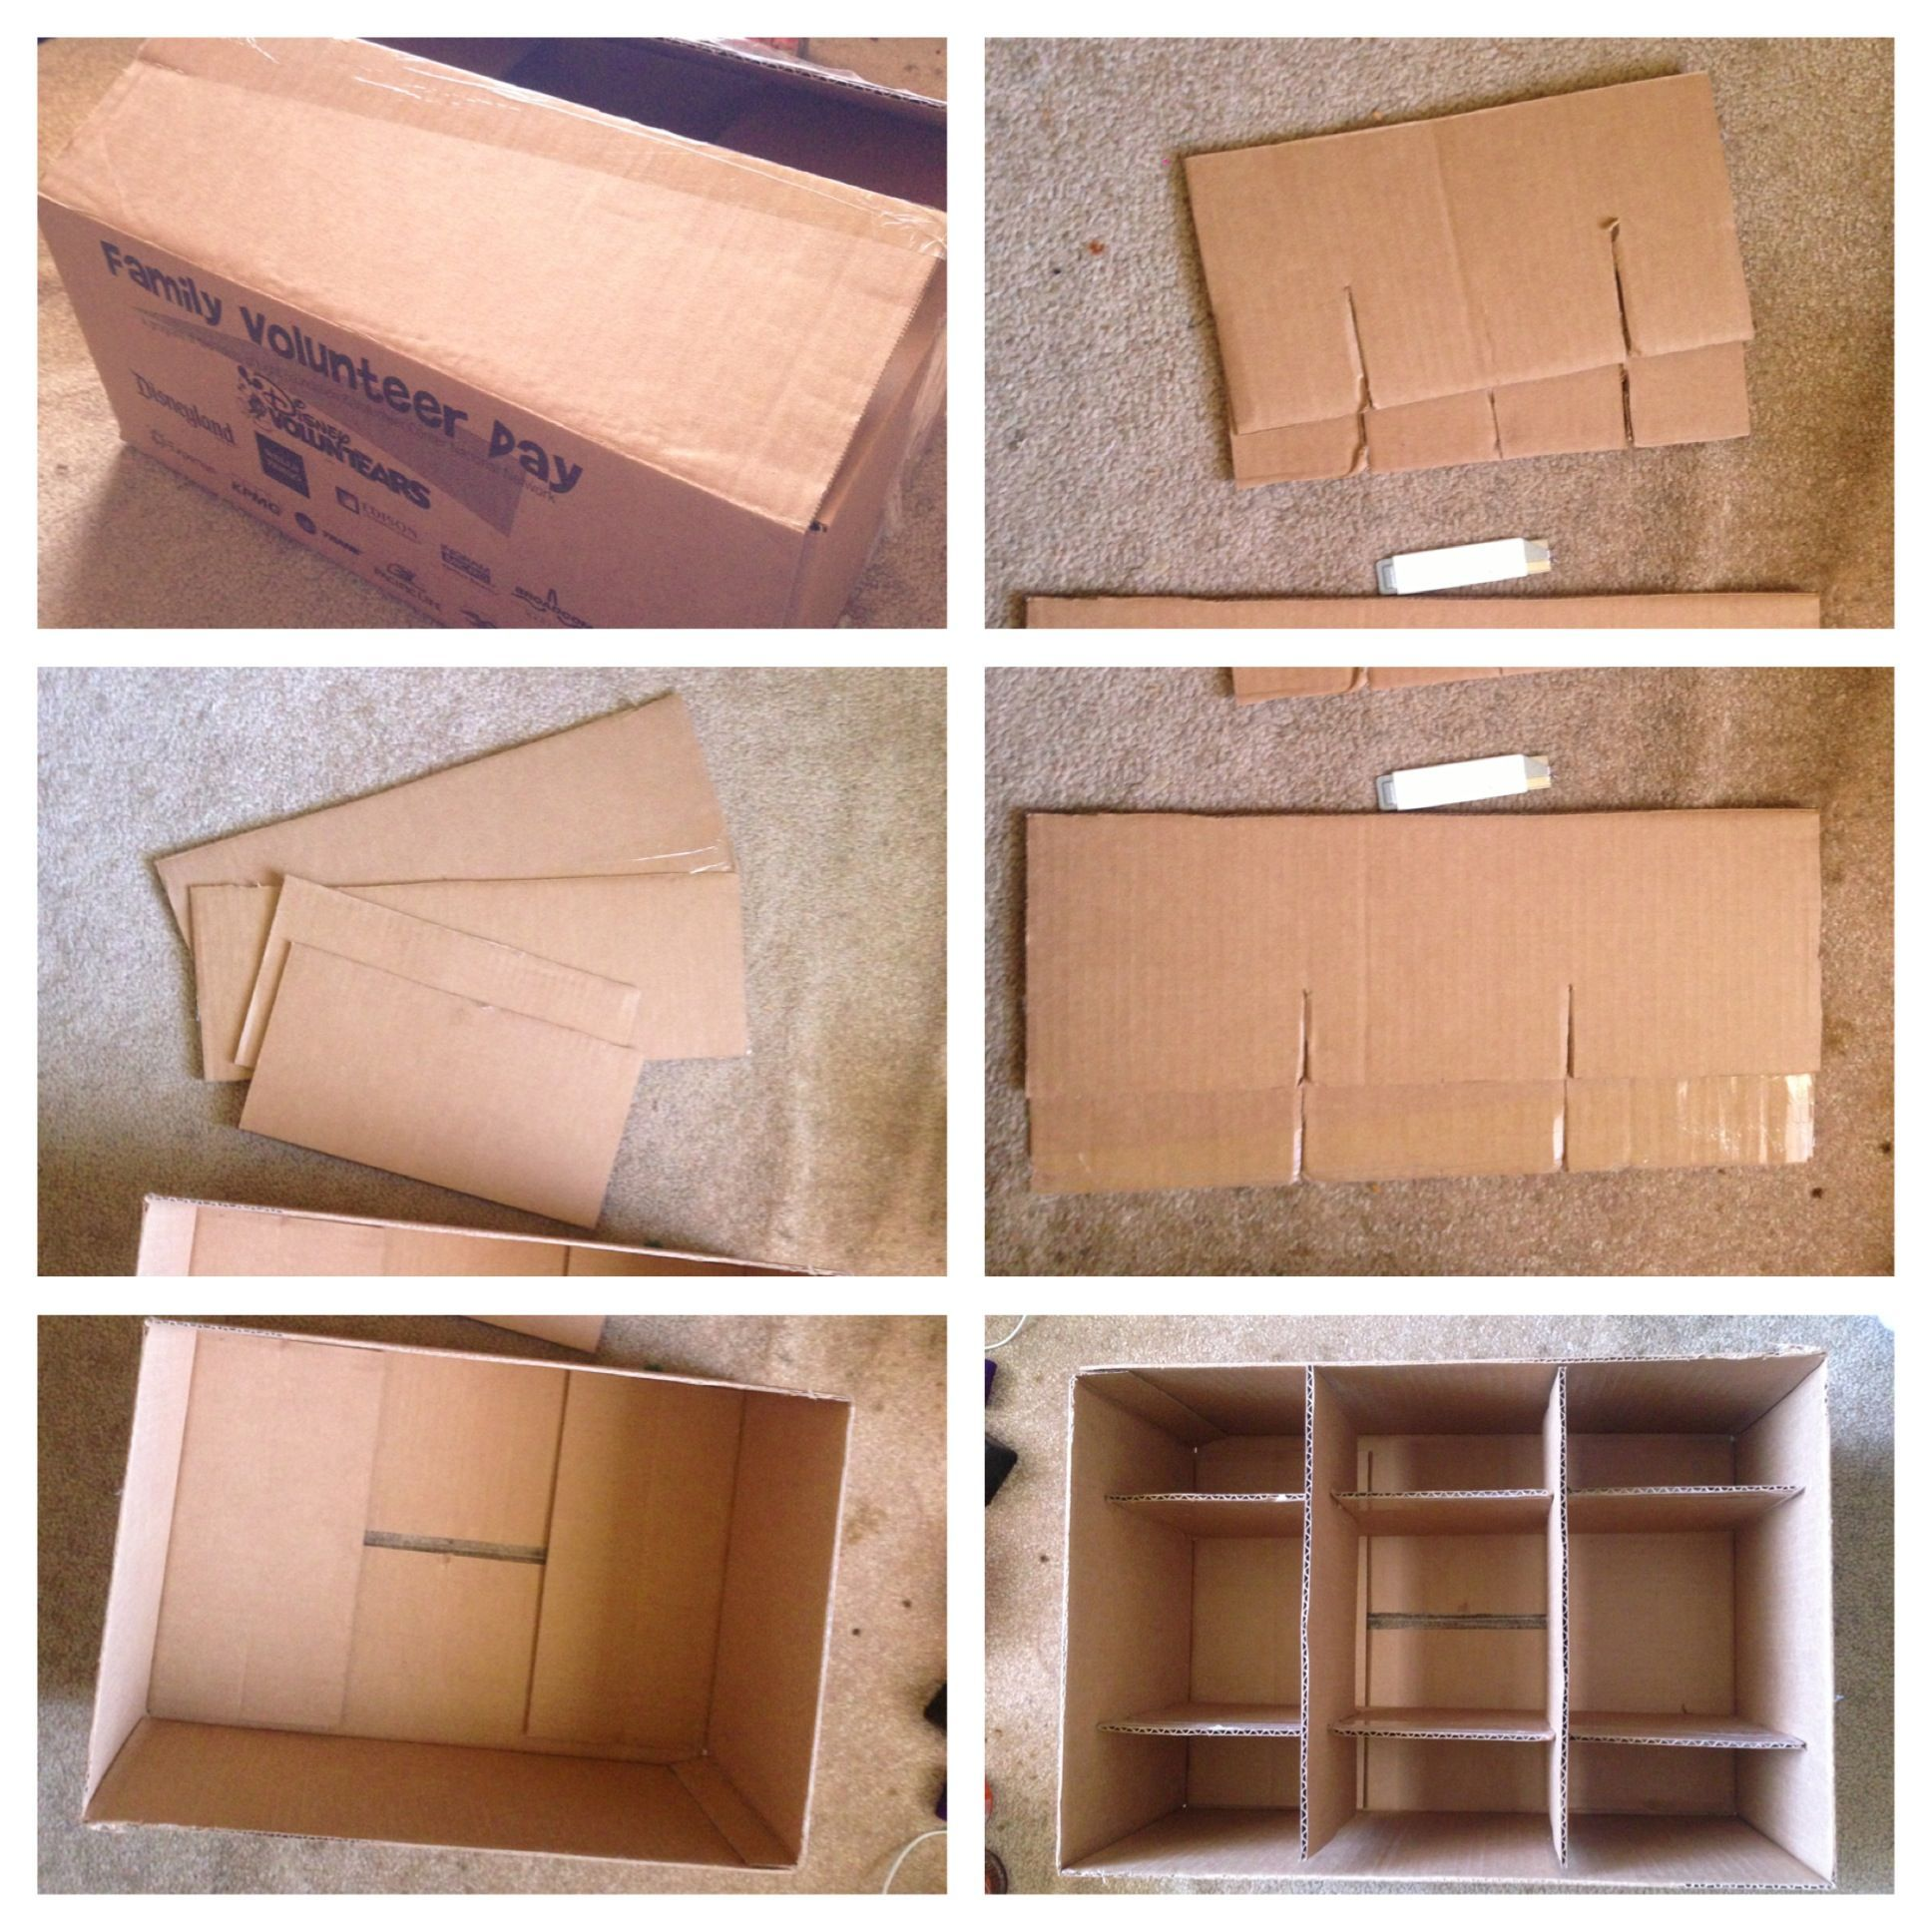 Cardboard Box Dividers Making A Storage Box With Dividers Using Just A Cardboard Box And